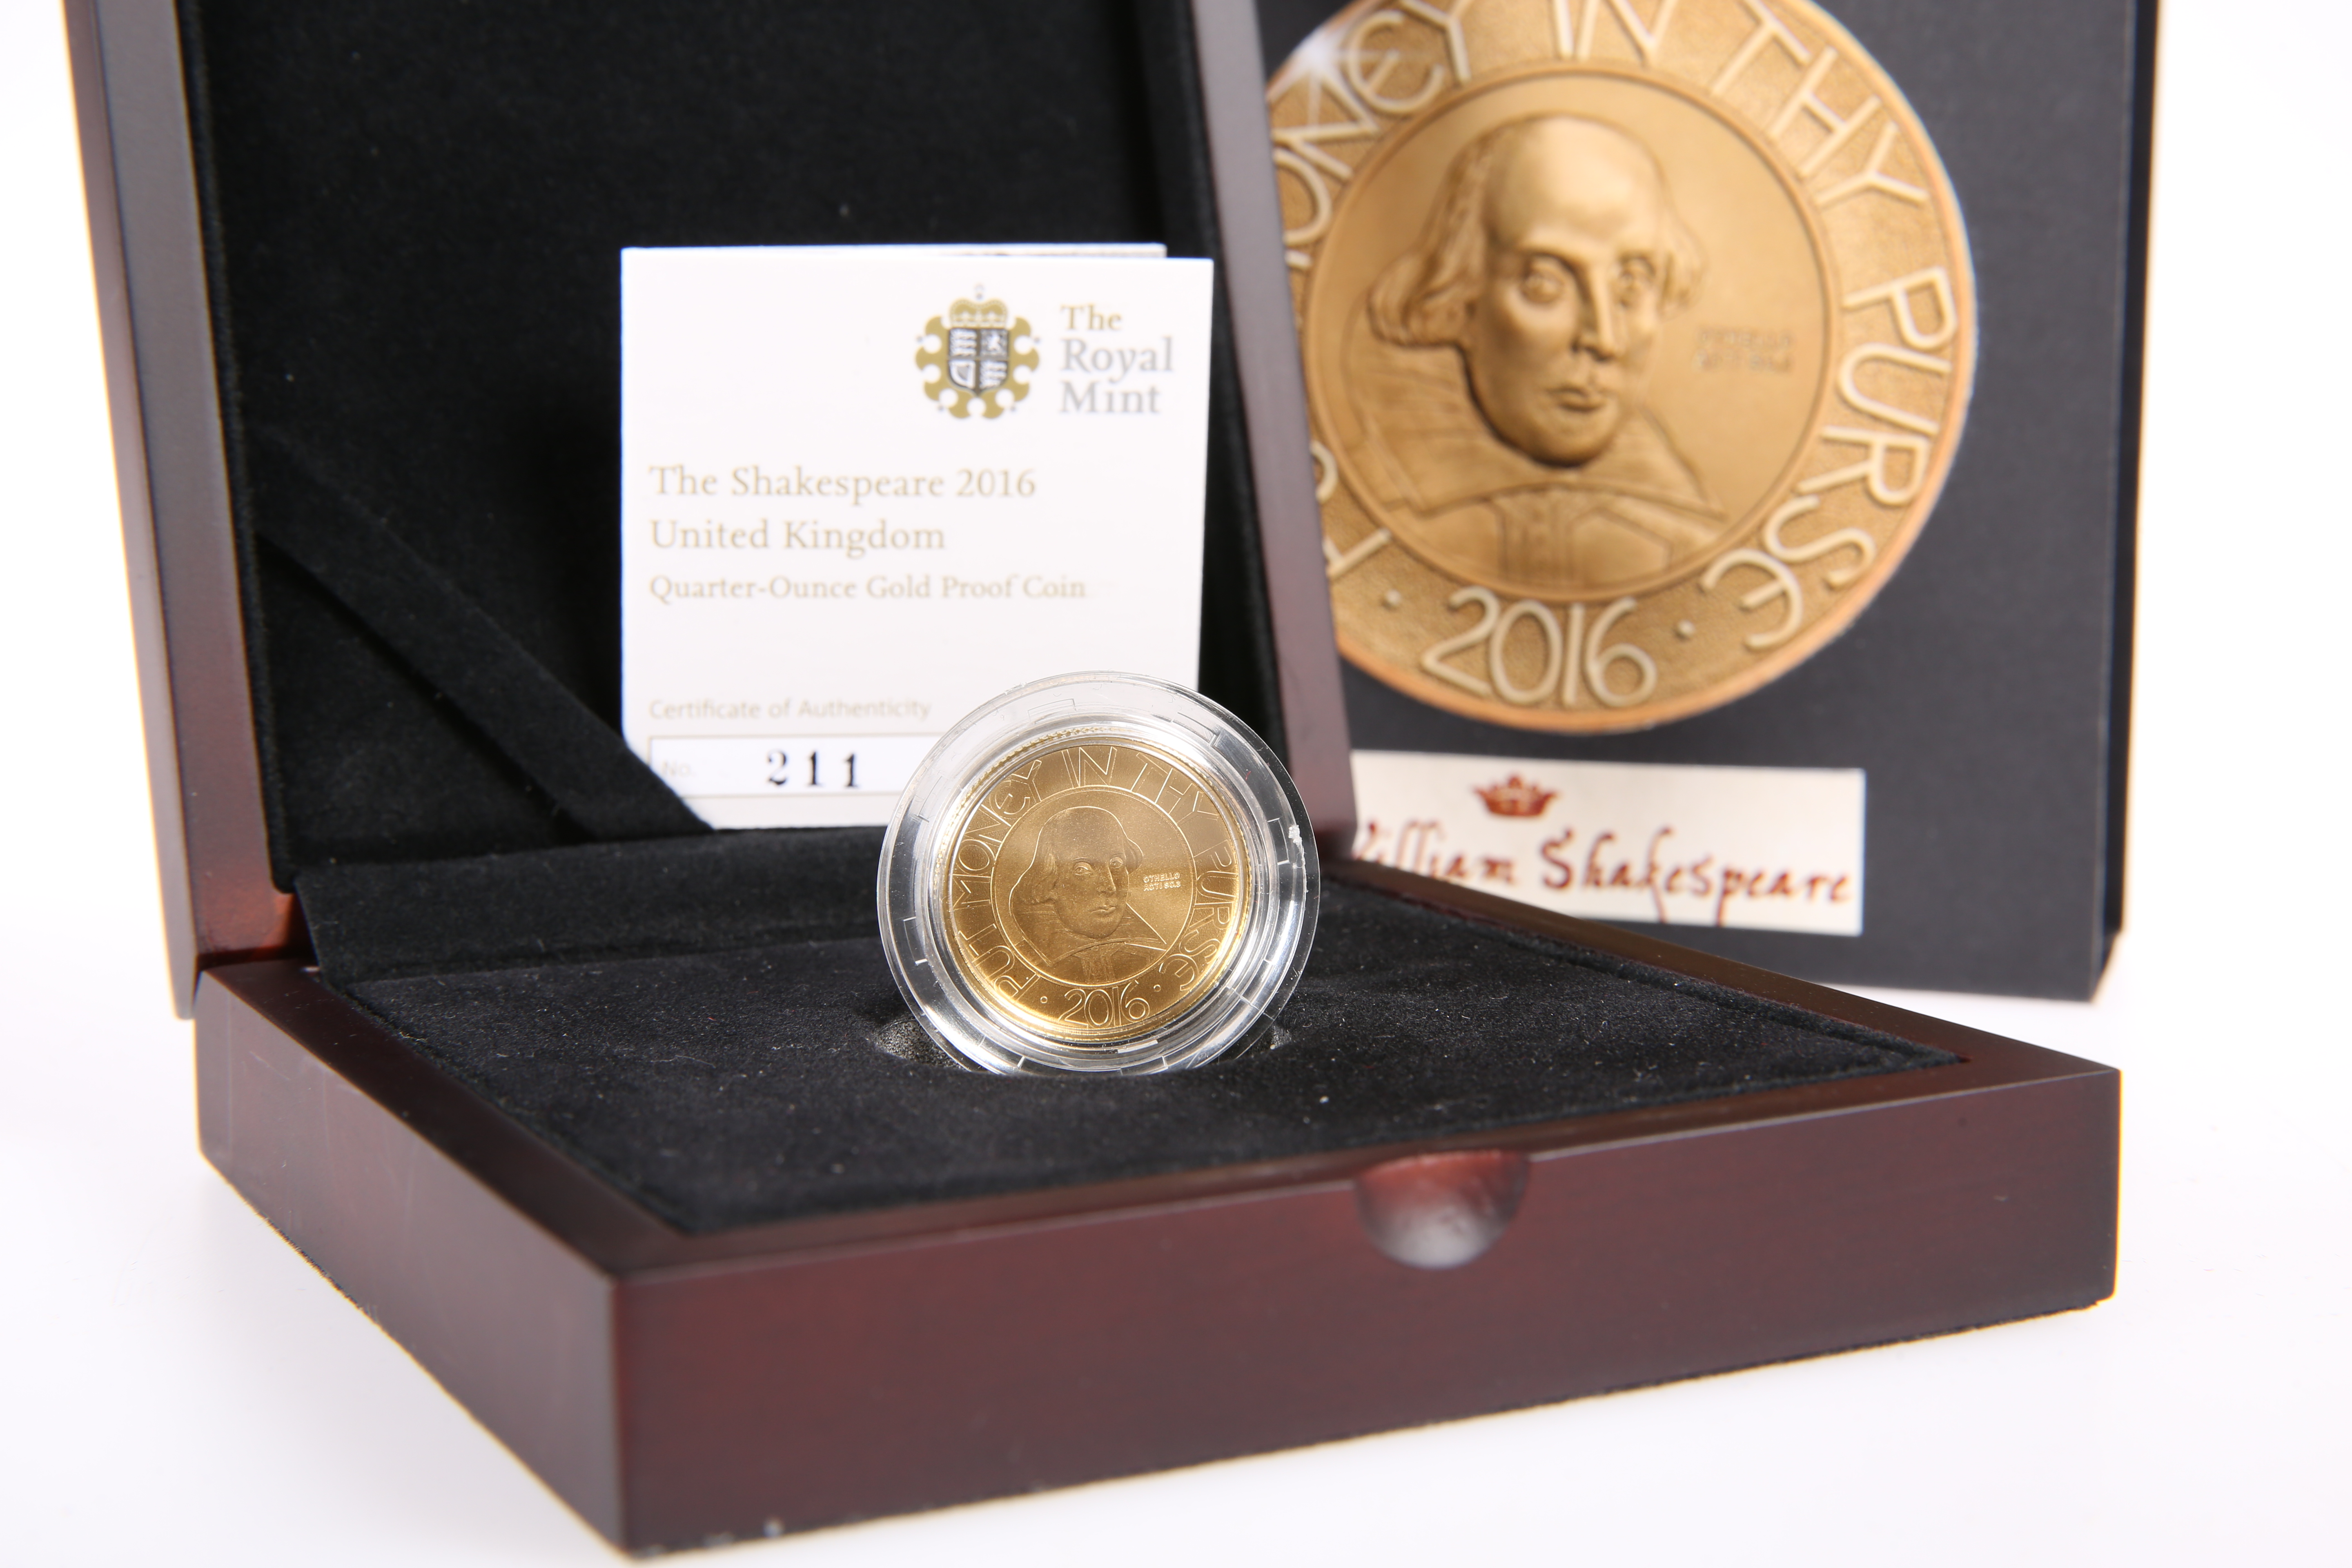 """A ROYAL MINT QUARTER-OUNCE GOLD PROOF COIN, """"THE SHAKESPEARE 2016"""", boxed with COA no. 211 - Image 2 of 2"""